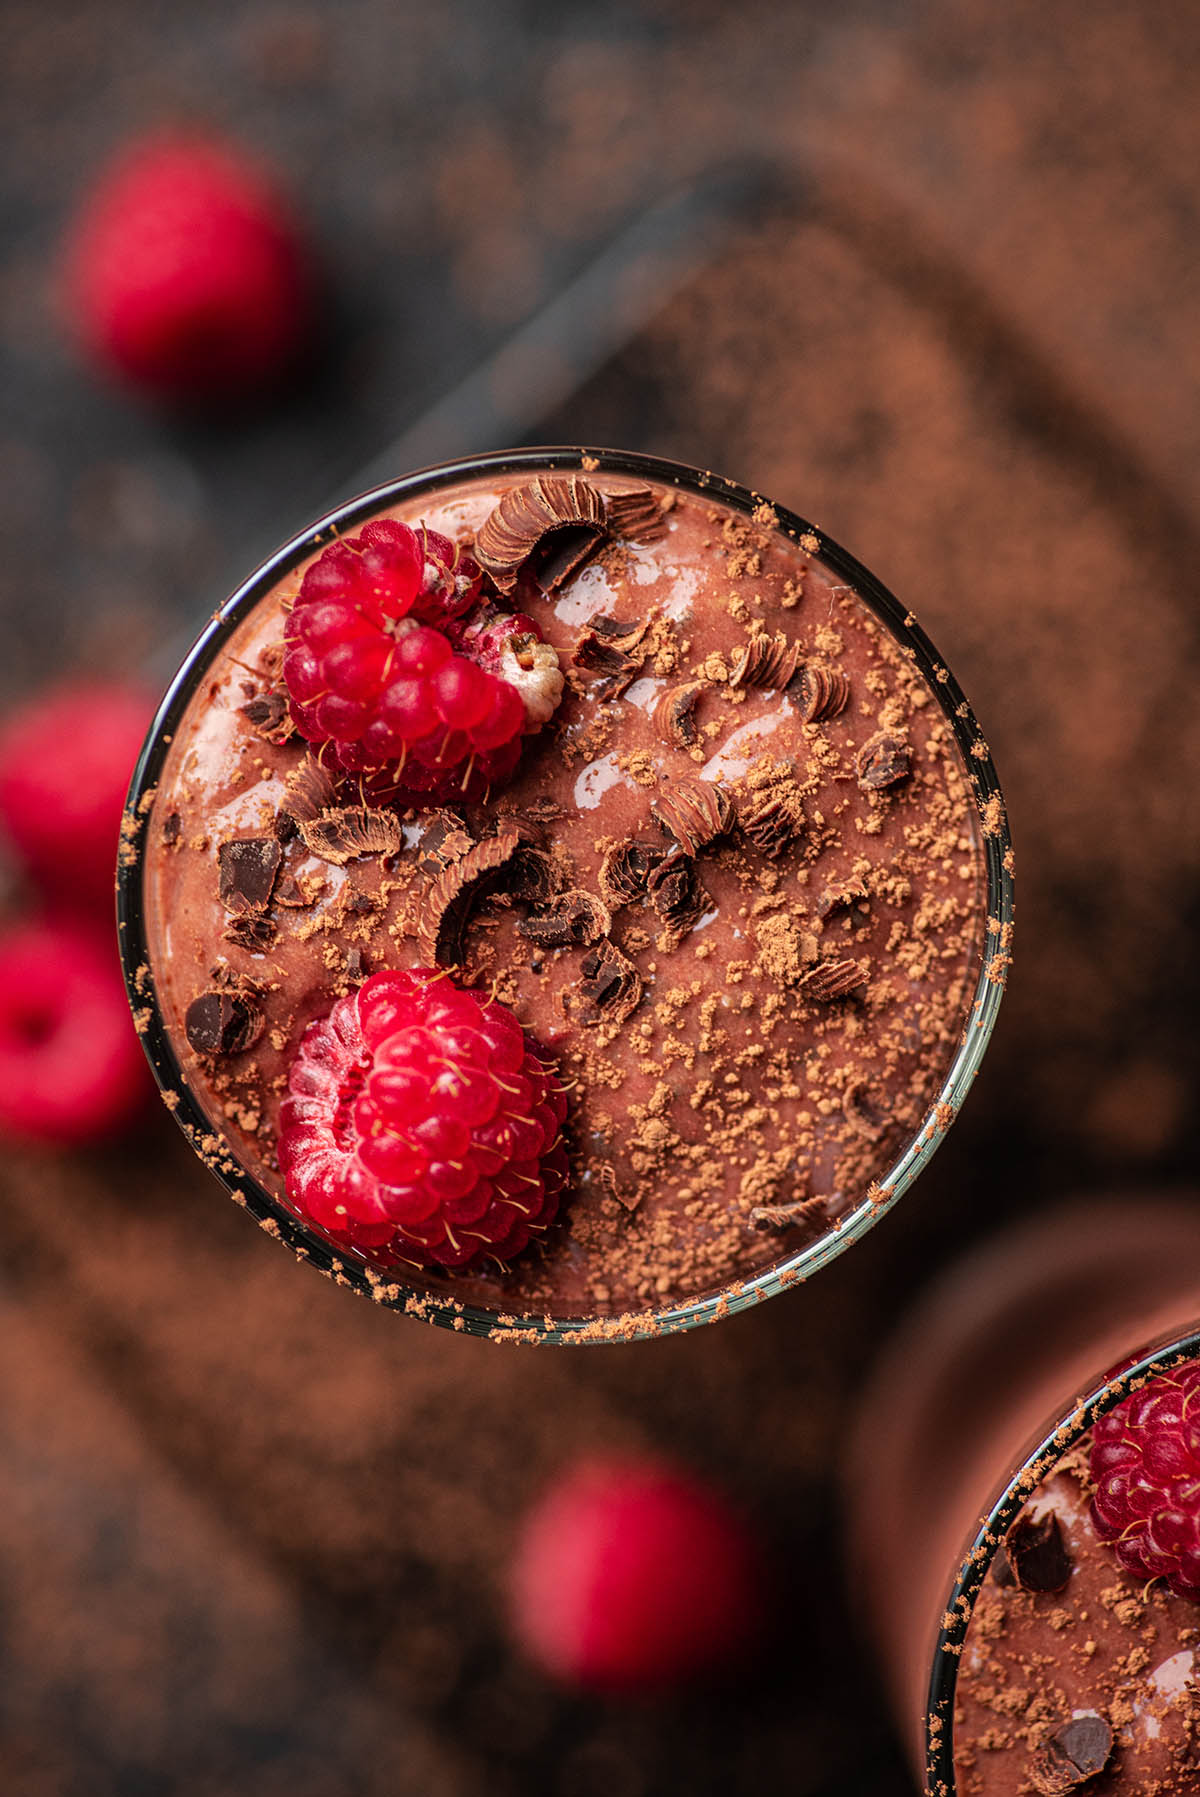 Chocolate raspberry protein shakes topped with chocolate, cocoa, and berries.